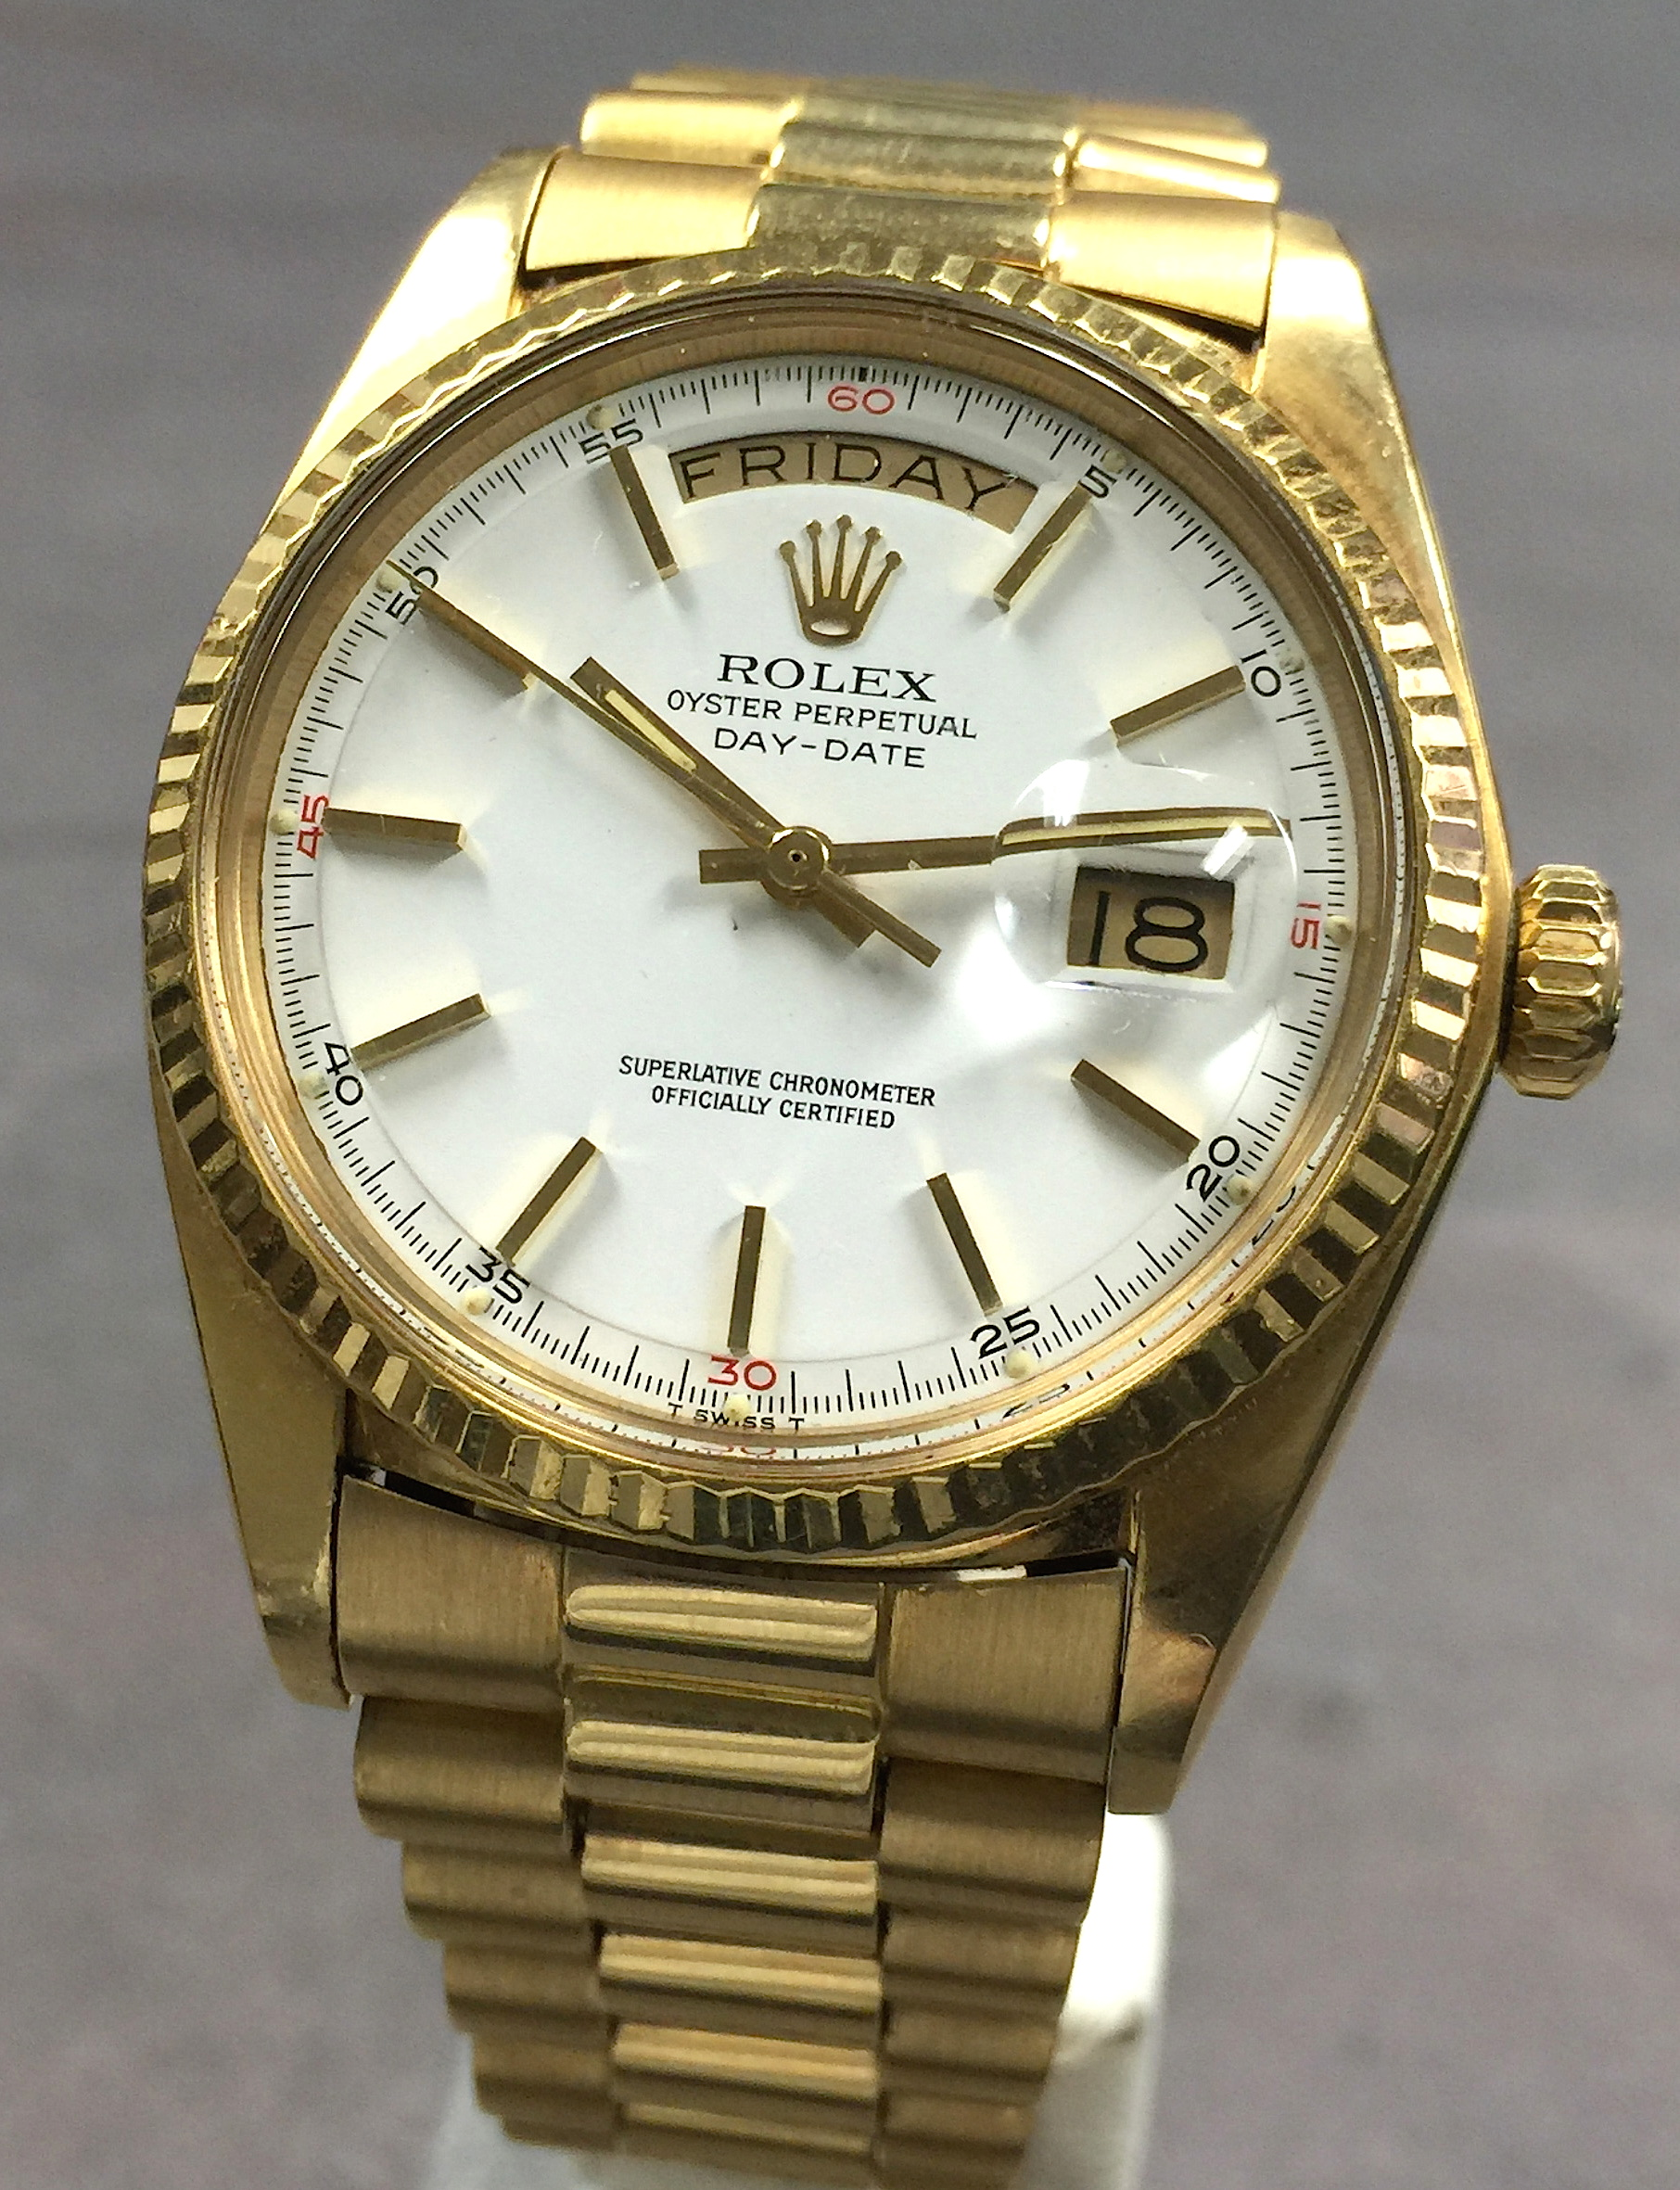 date day start rolex watches slideshow gold products yellow papers president slideshowstop presidential box